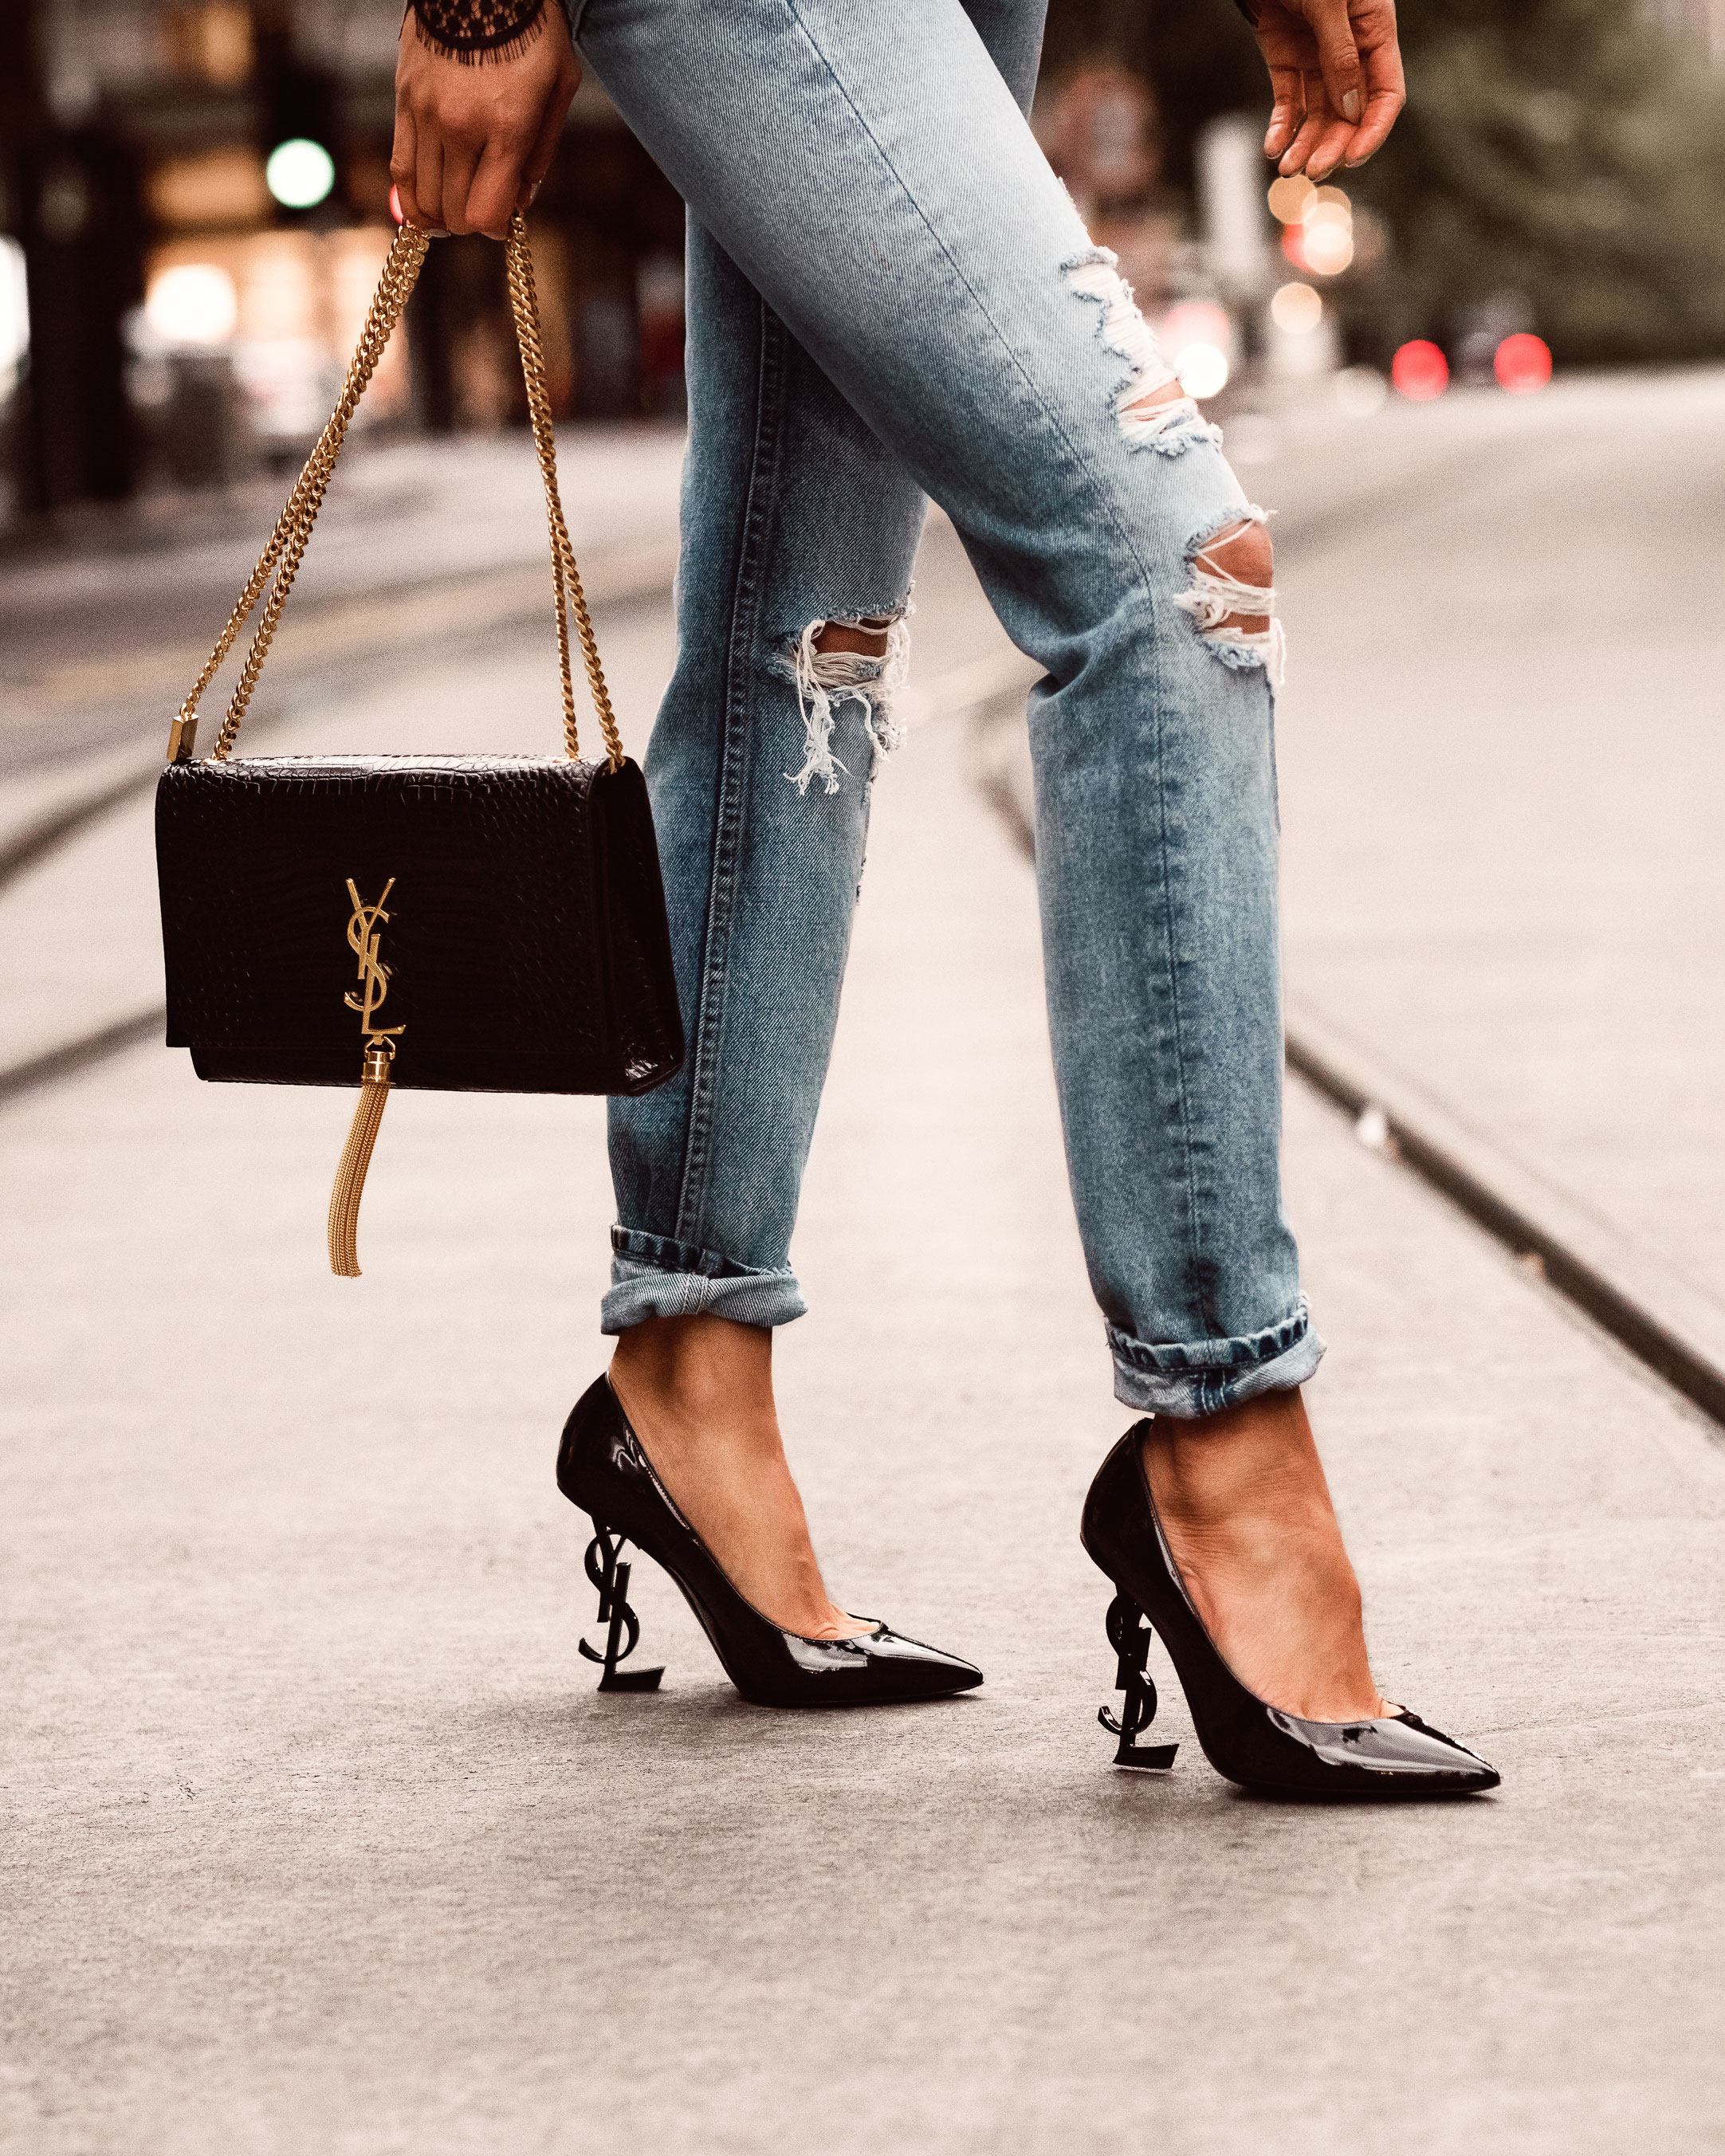 Micah-Gianneli-Australian-Melbourne-Fashion-Blogger-Influencer-Photography-Street-Style-Vogue-Editorial-Luisaviaroma-YSL-Saint-Laurent-Opyum-Kate-Bag-Revolve-NBD-Grlfrnd-Designer-Luxury-5